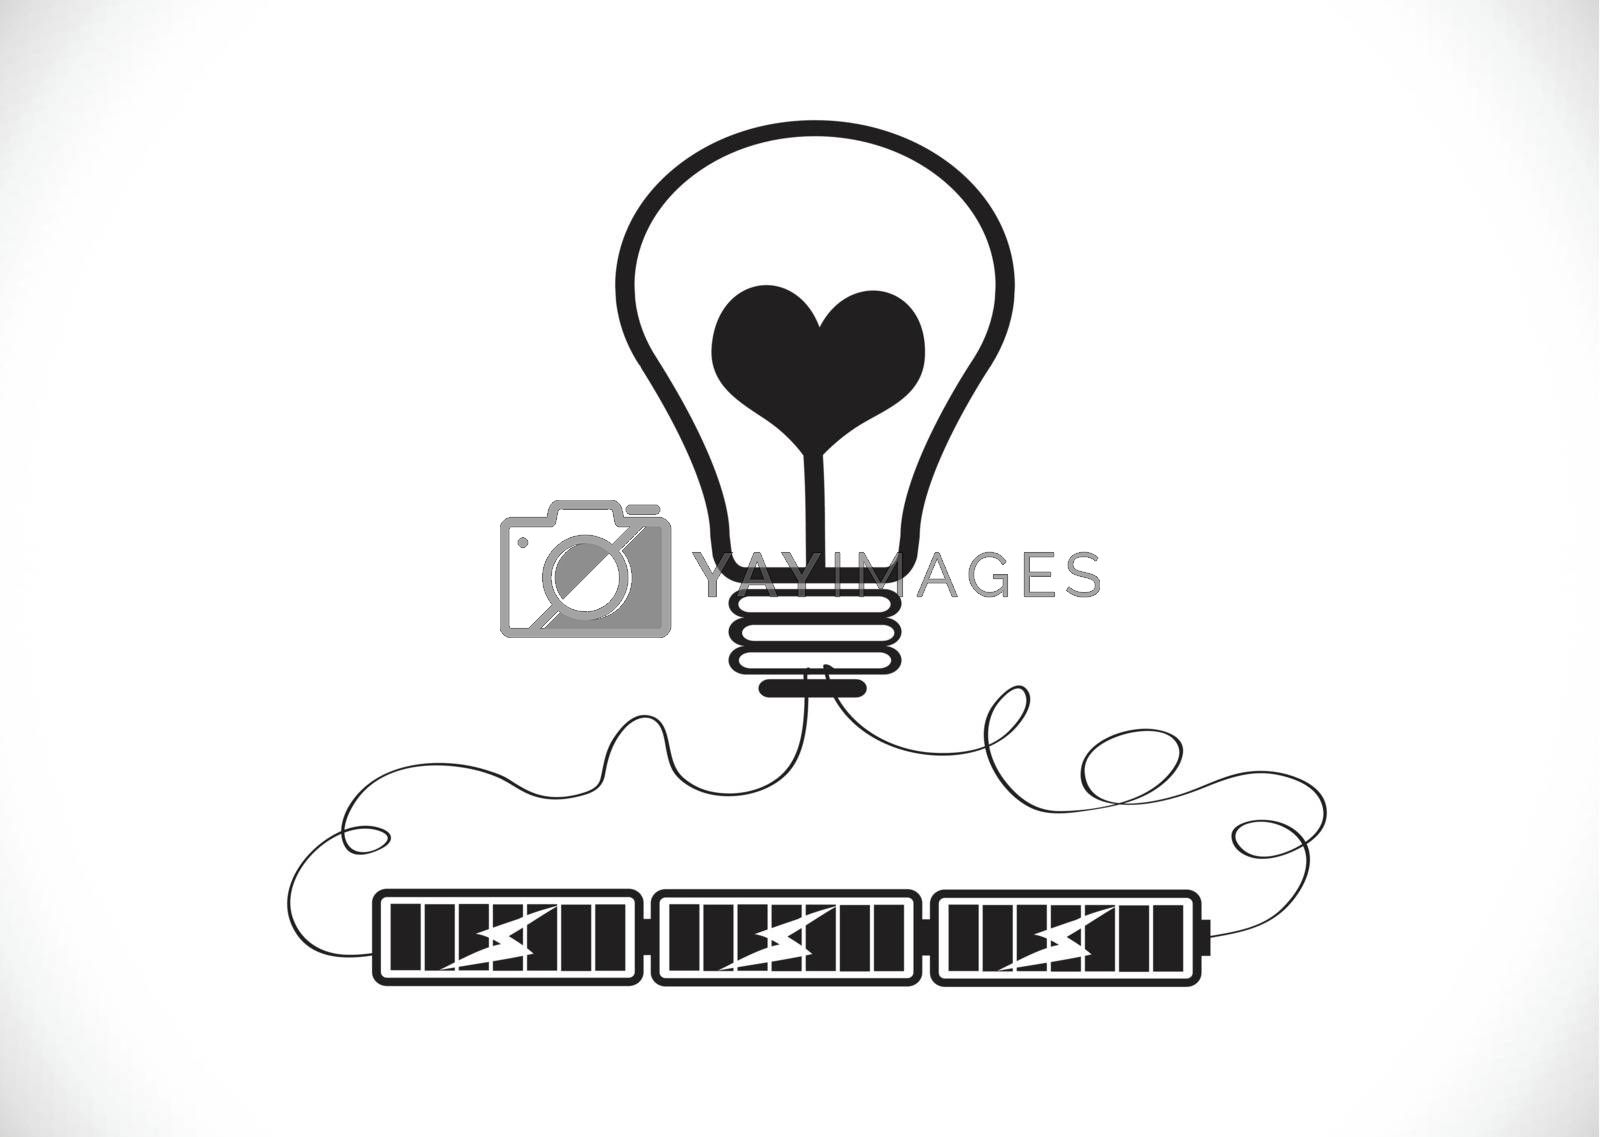 Light bulb Charging Battery Power Idea design by kiddaikiddee